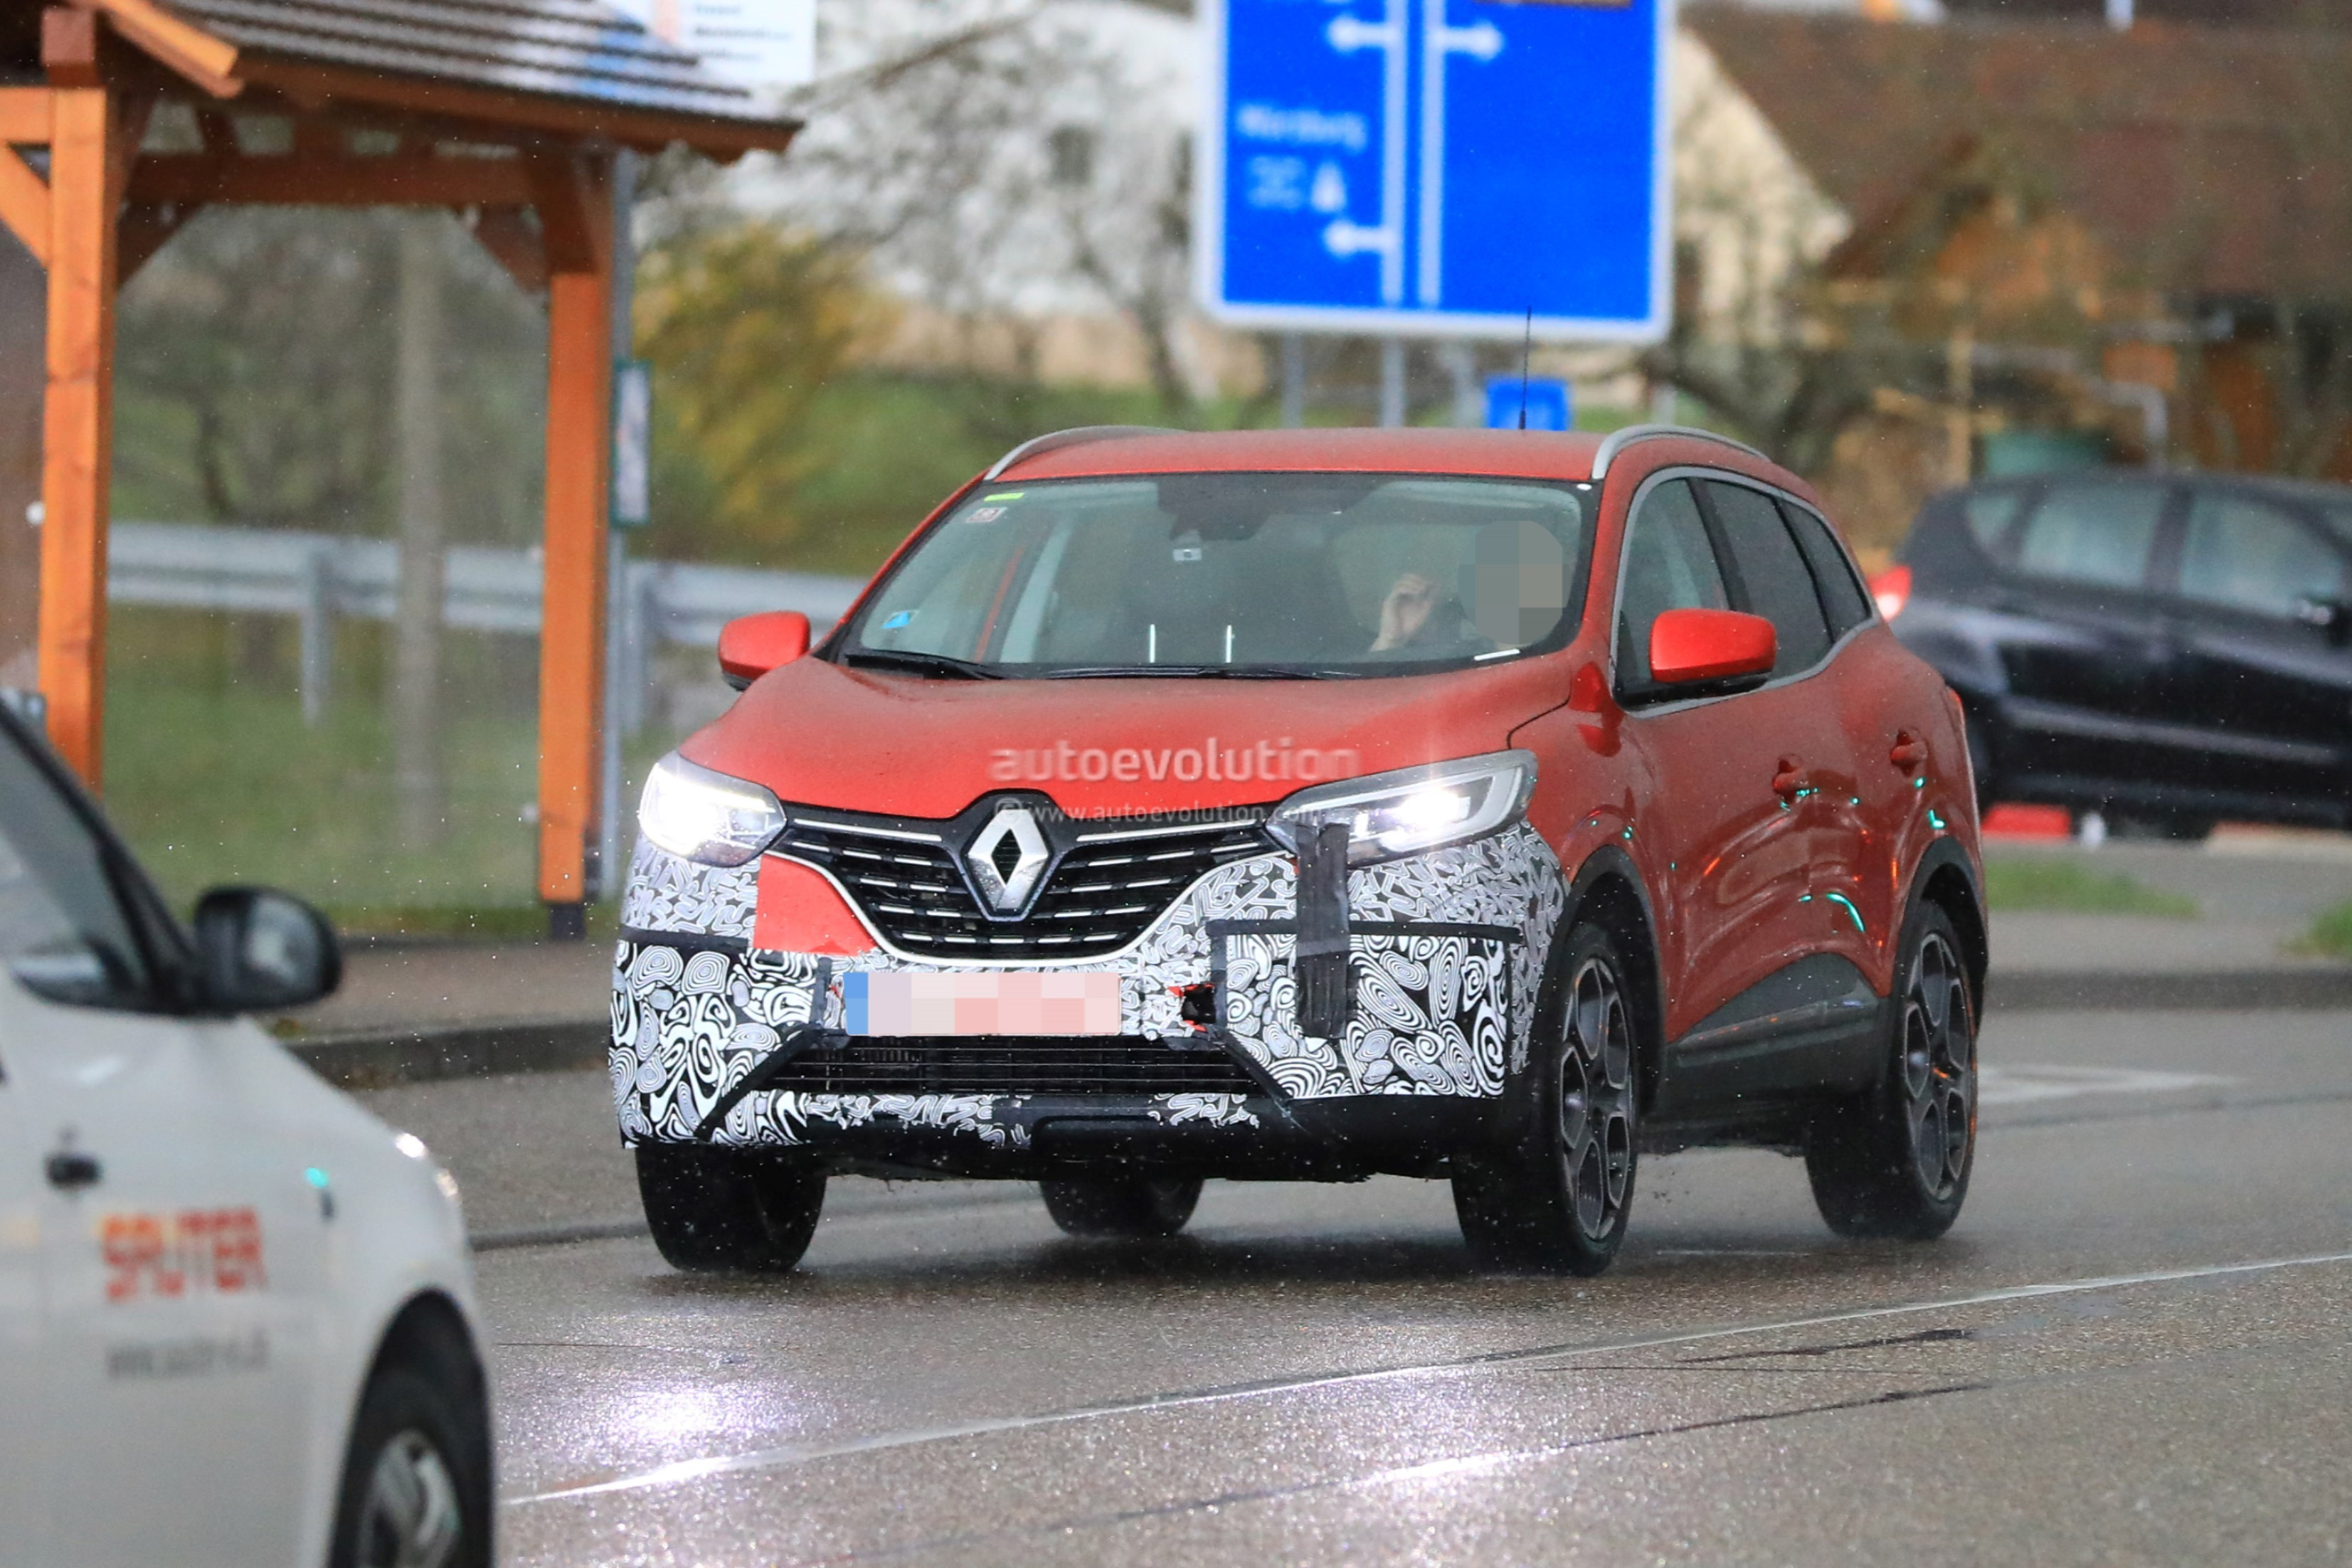 2019 Renault Kadjar Facelift Shows Redesigned Grille In ...